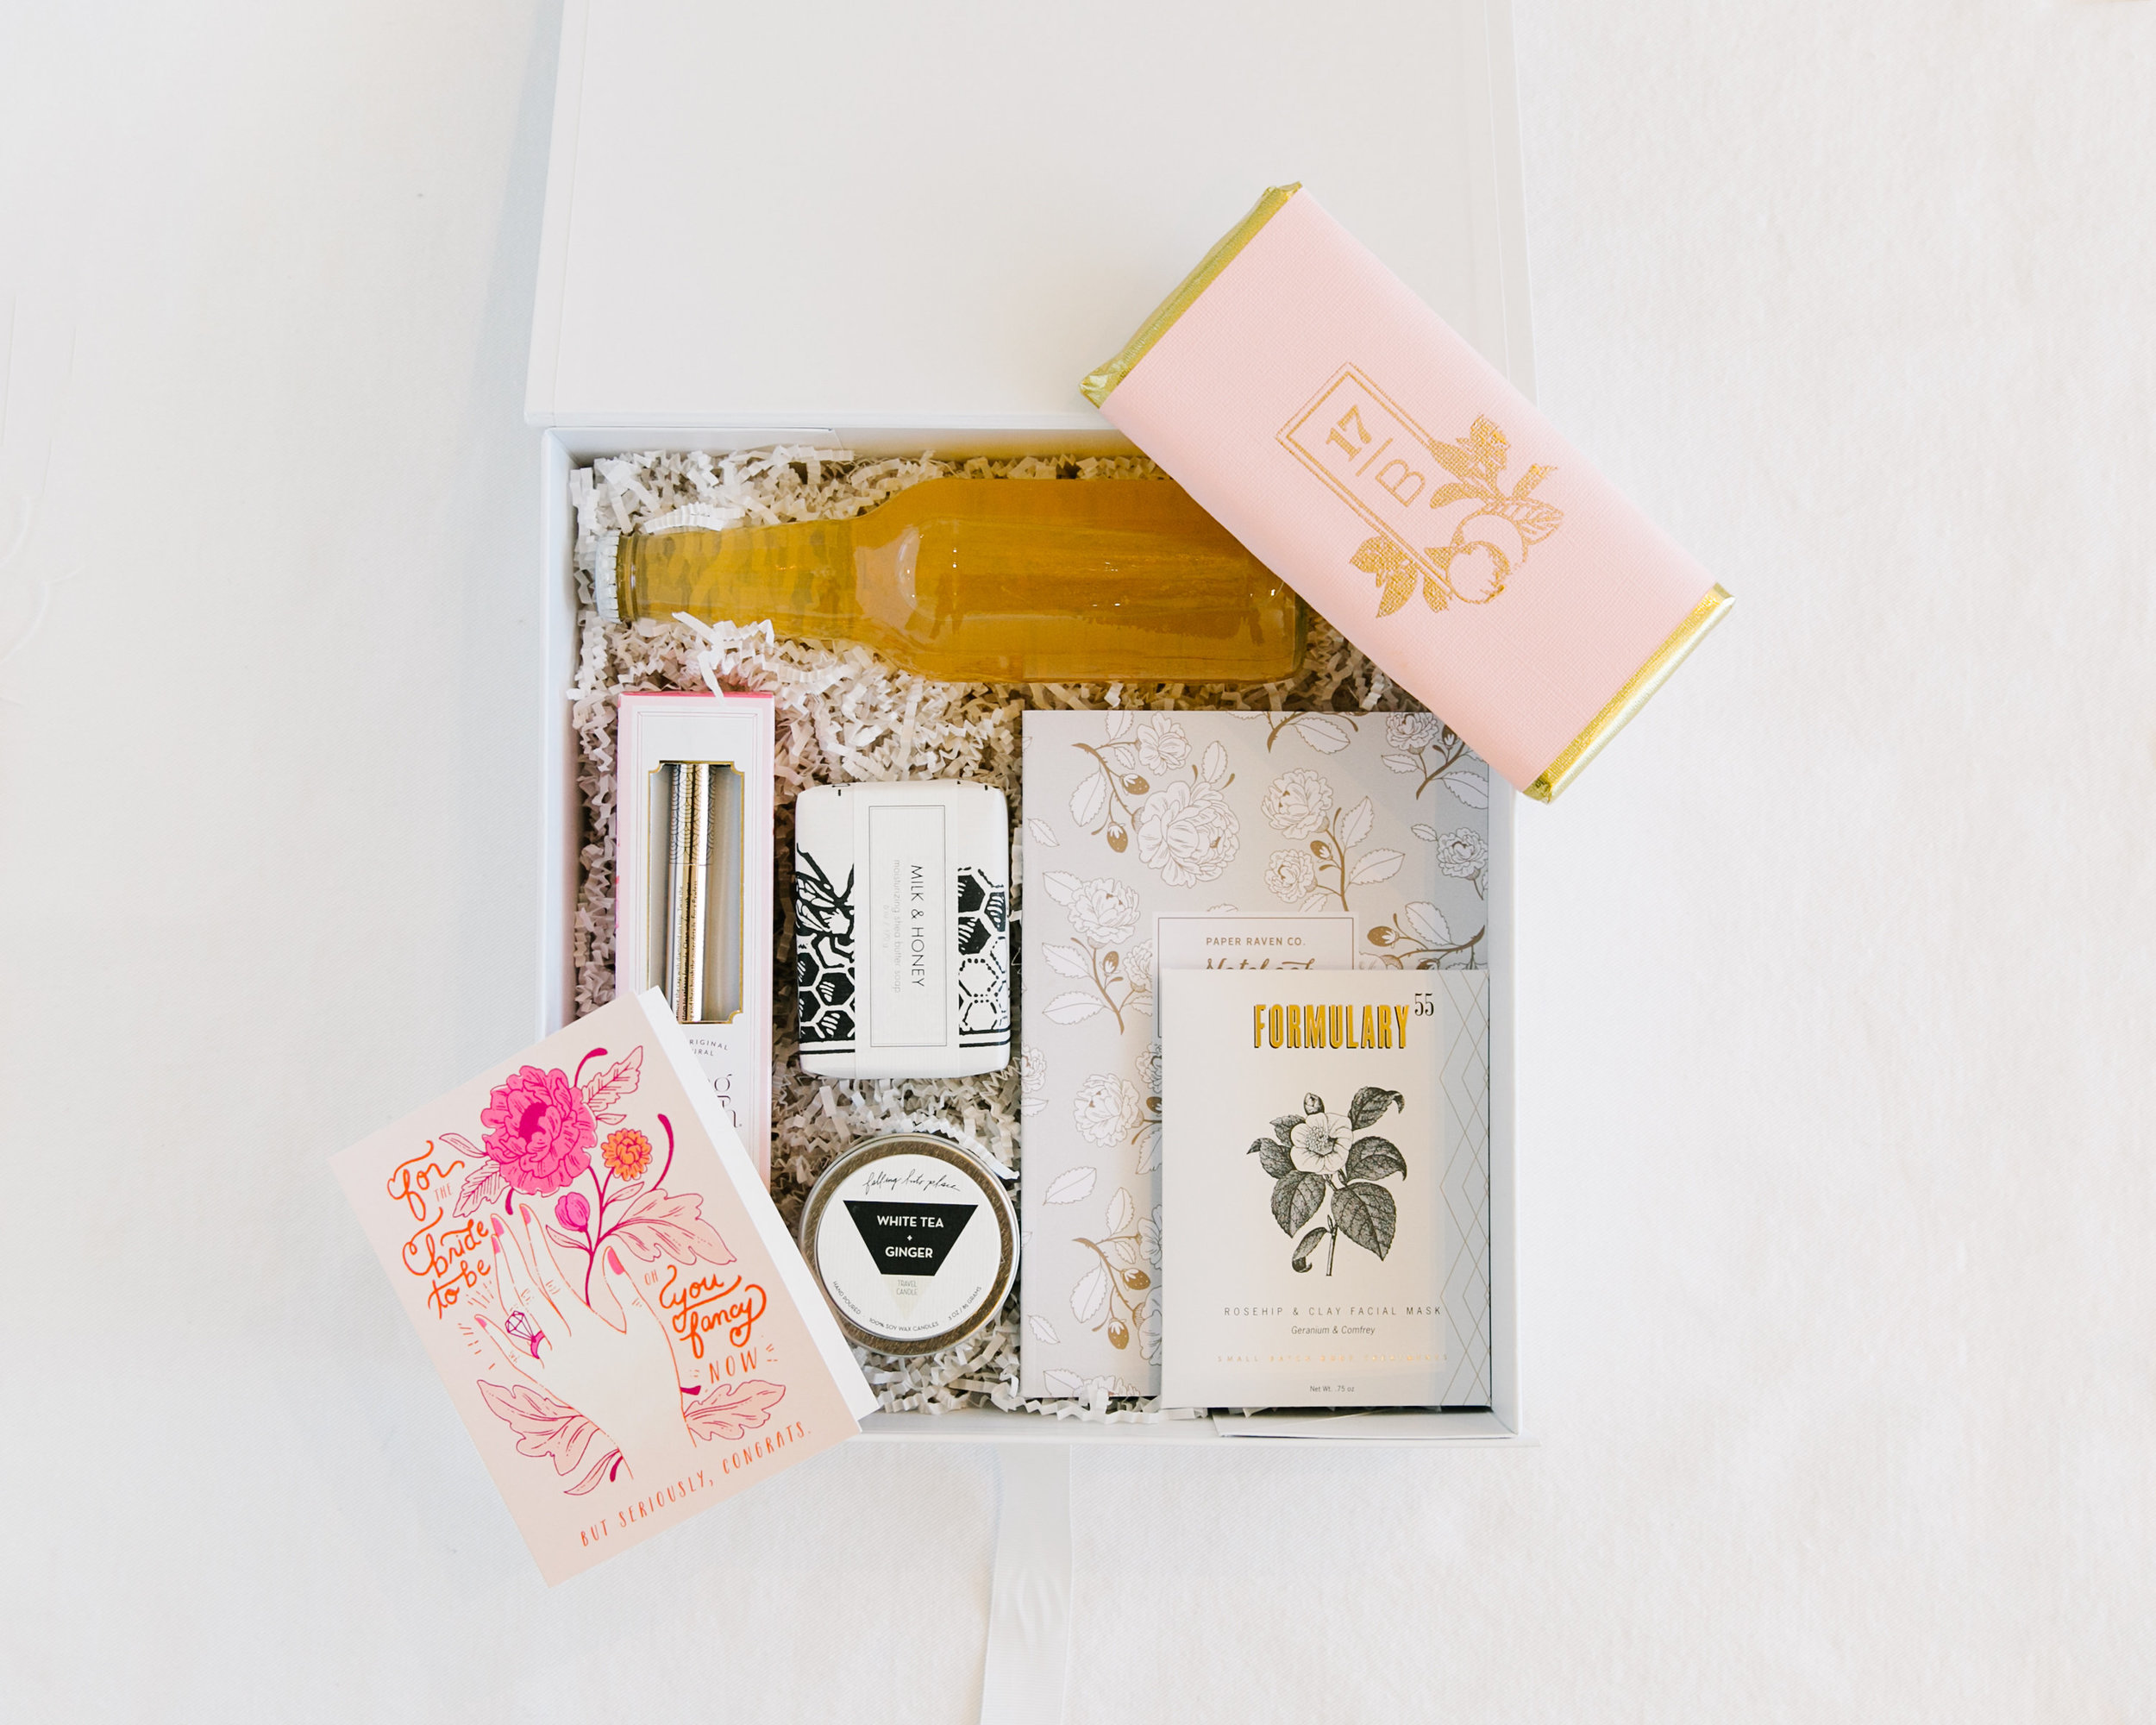 """HAPPILY EVER AFTER""  :  a premium keepsake box, perfect for a bride-to-be to commemorate her groom popping the question.  Includes a congratulations card, a bubbly beverage, a notebook for wedding ideas, a Bling Brush to shine her ring, chocolate bar, + all the relaxation essentials : face mask, bath fizzy, + candle."